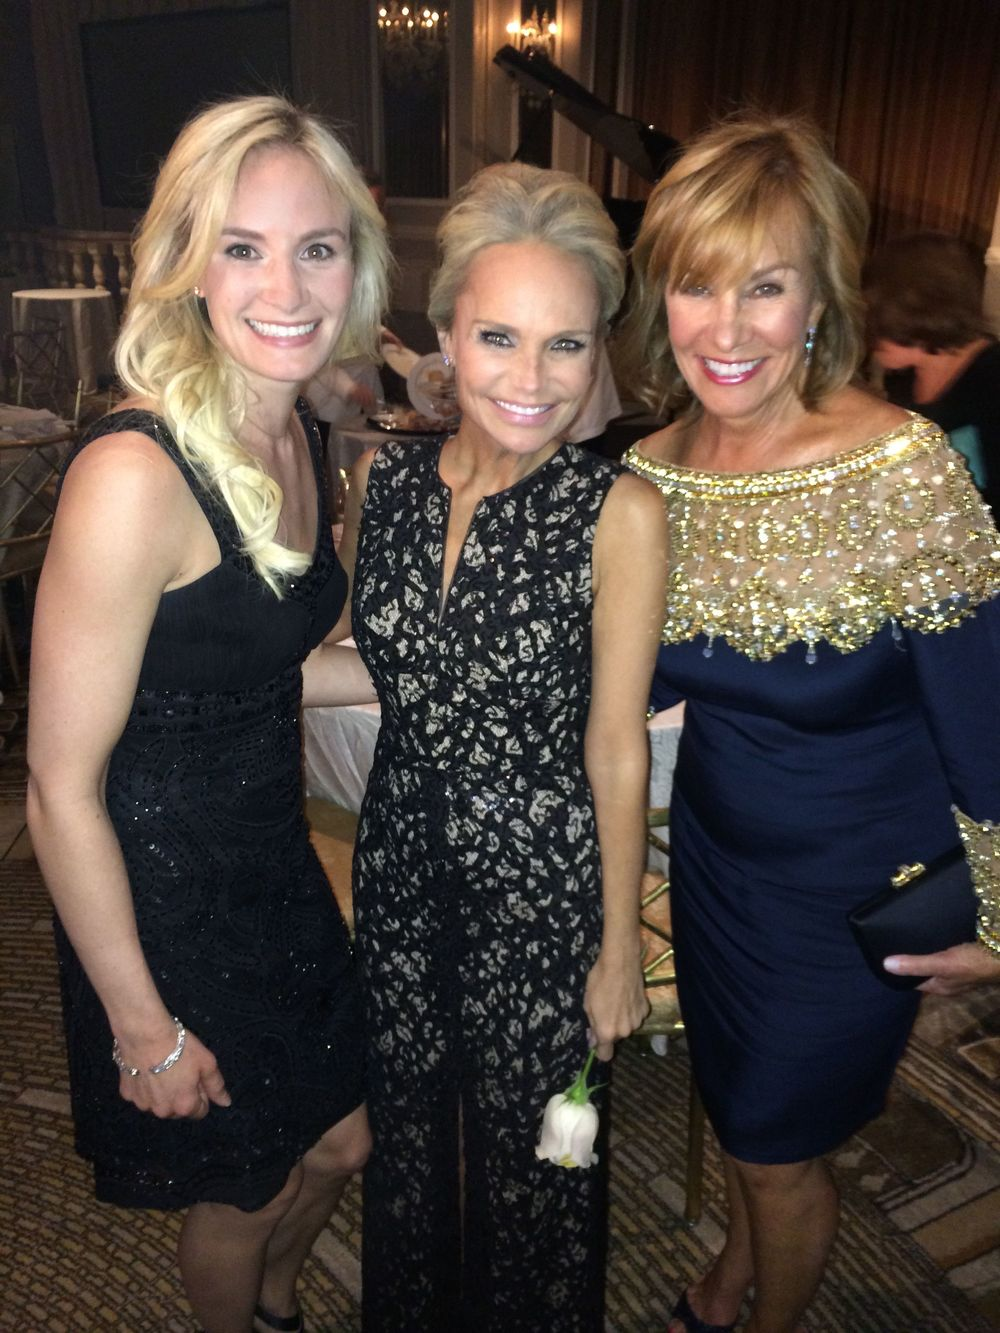 The effervescent Kristin Chenoweth & my mom - who has always supported me in every artistic and creative endeavor in my life, and the reason I became an actor